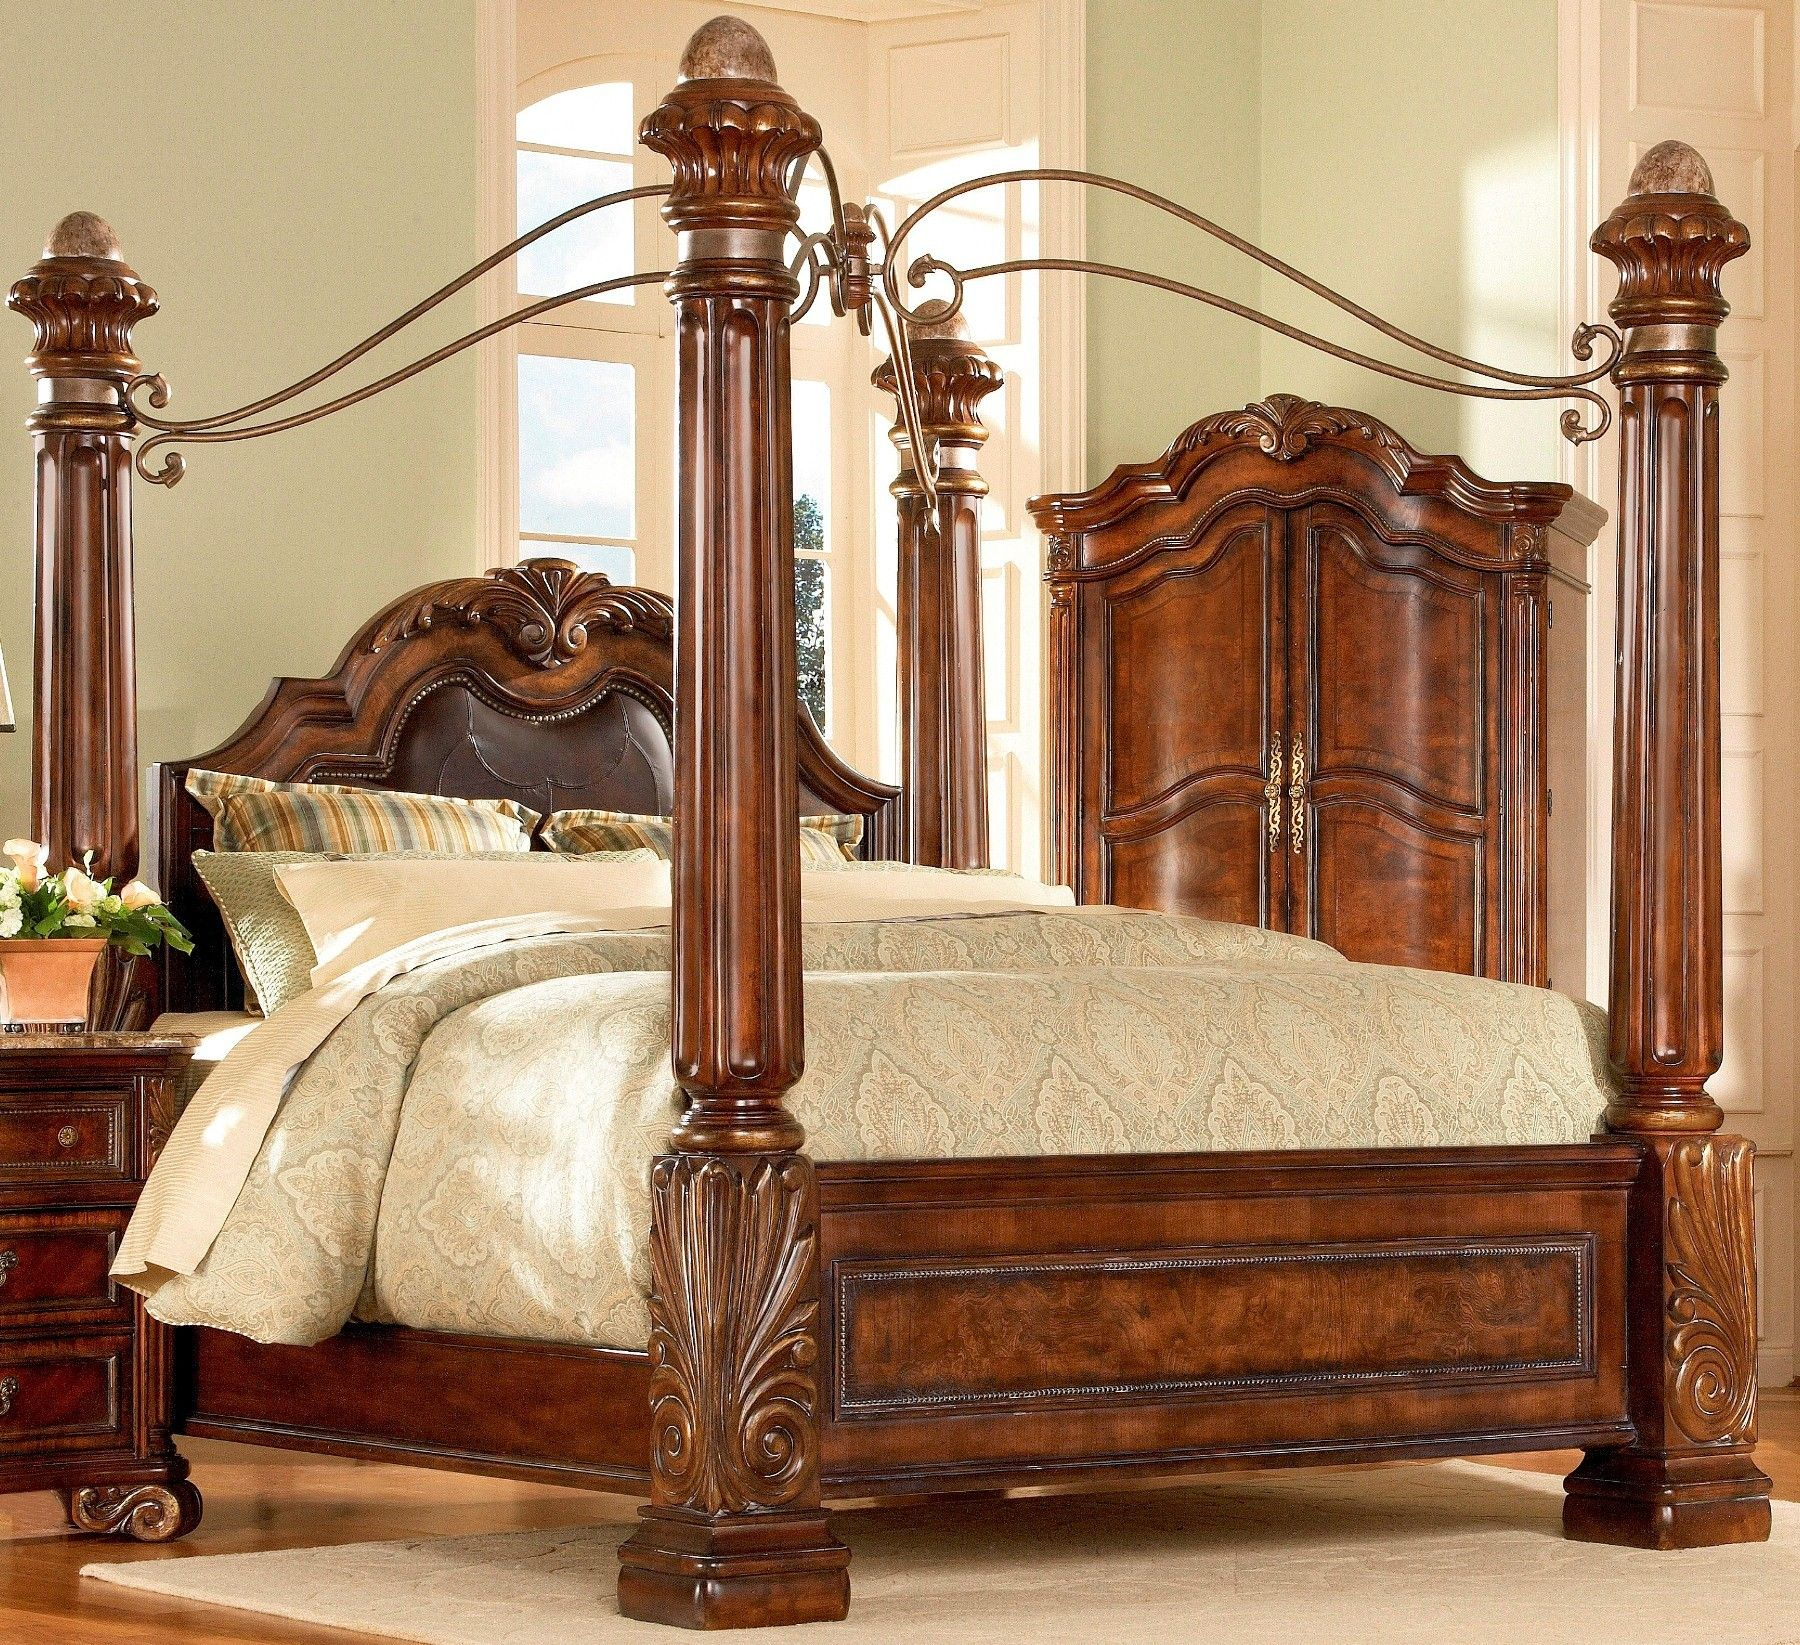 Ashley Furniture  The Best Furniture Brands for Less  Coleman